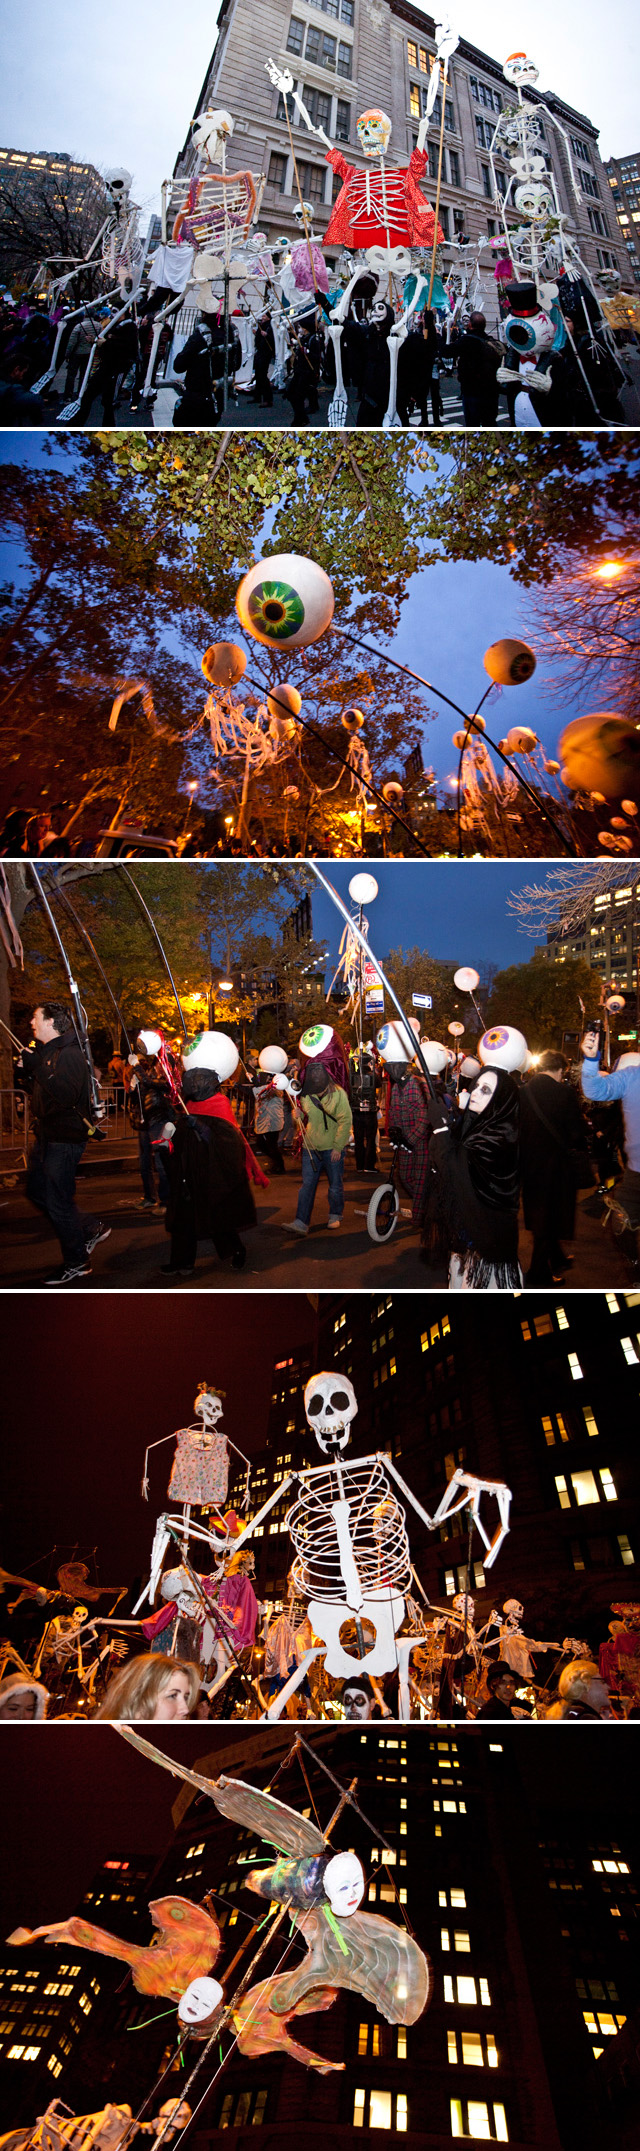 The 39th Annual Village Halloween Parade